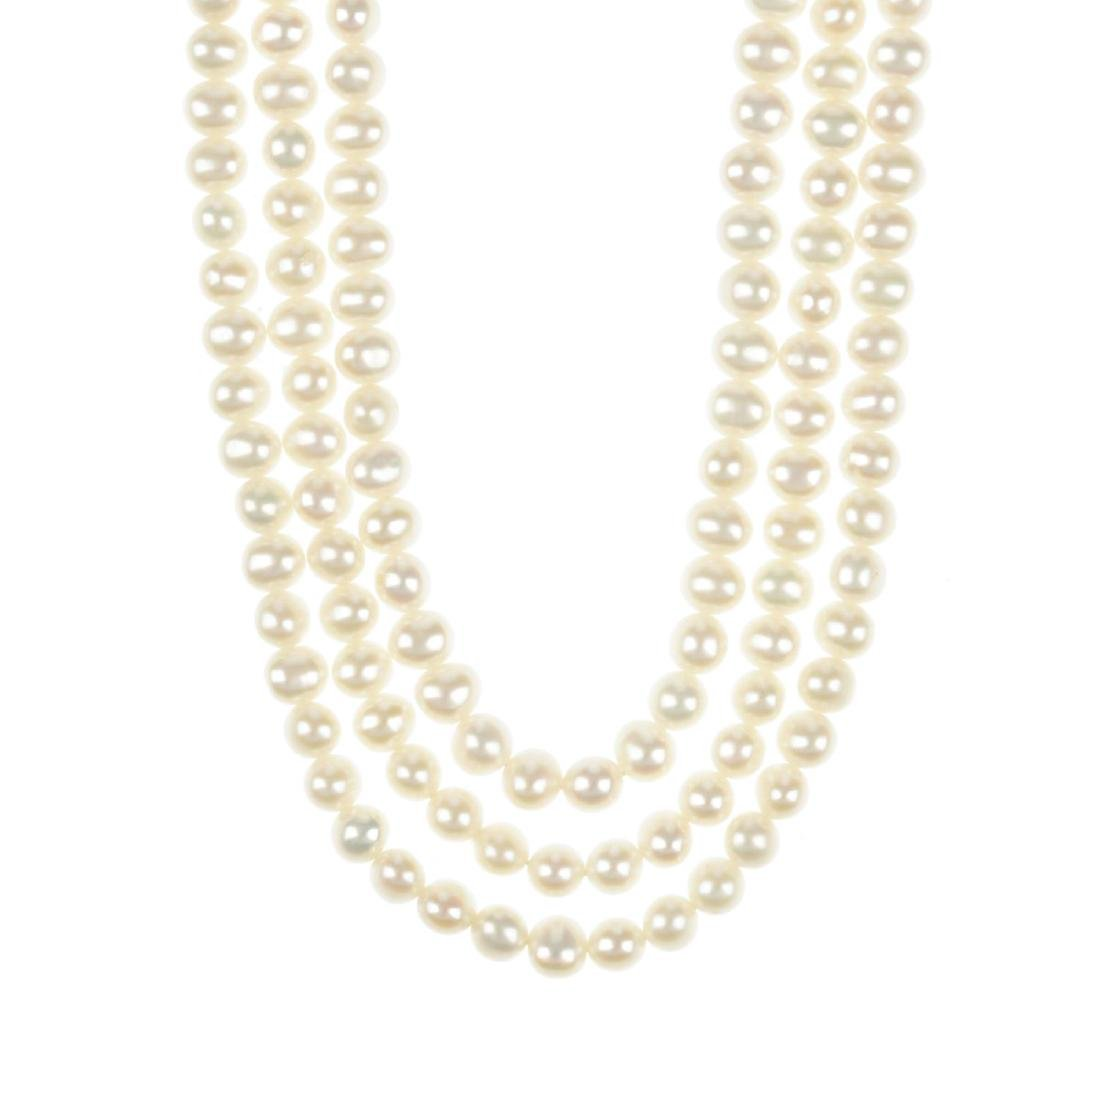 A three-strand cultured pearl necklace. Comprising